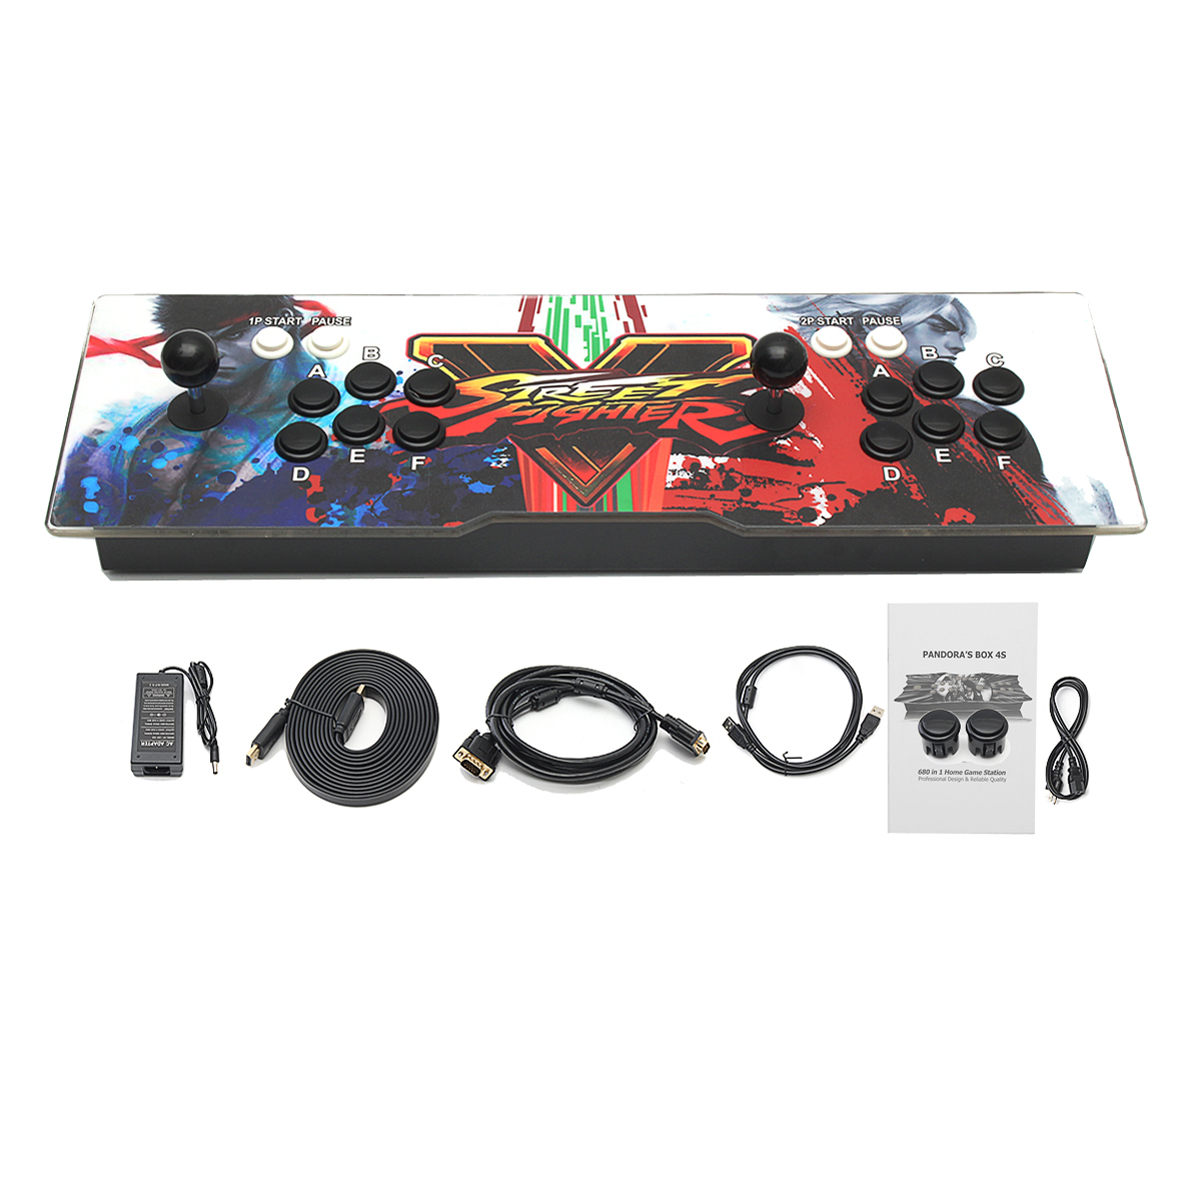 PandoraBox 5S 1300 in 1 Dual Player Double Joystick Arcade Games Console